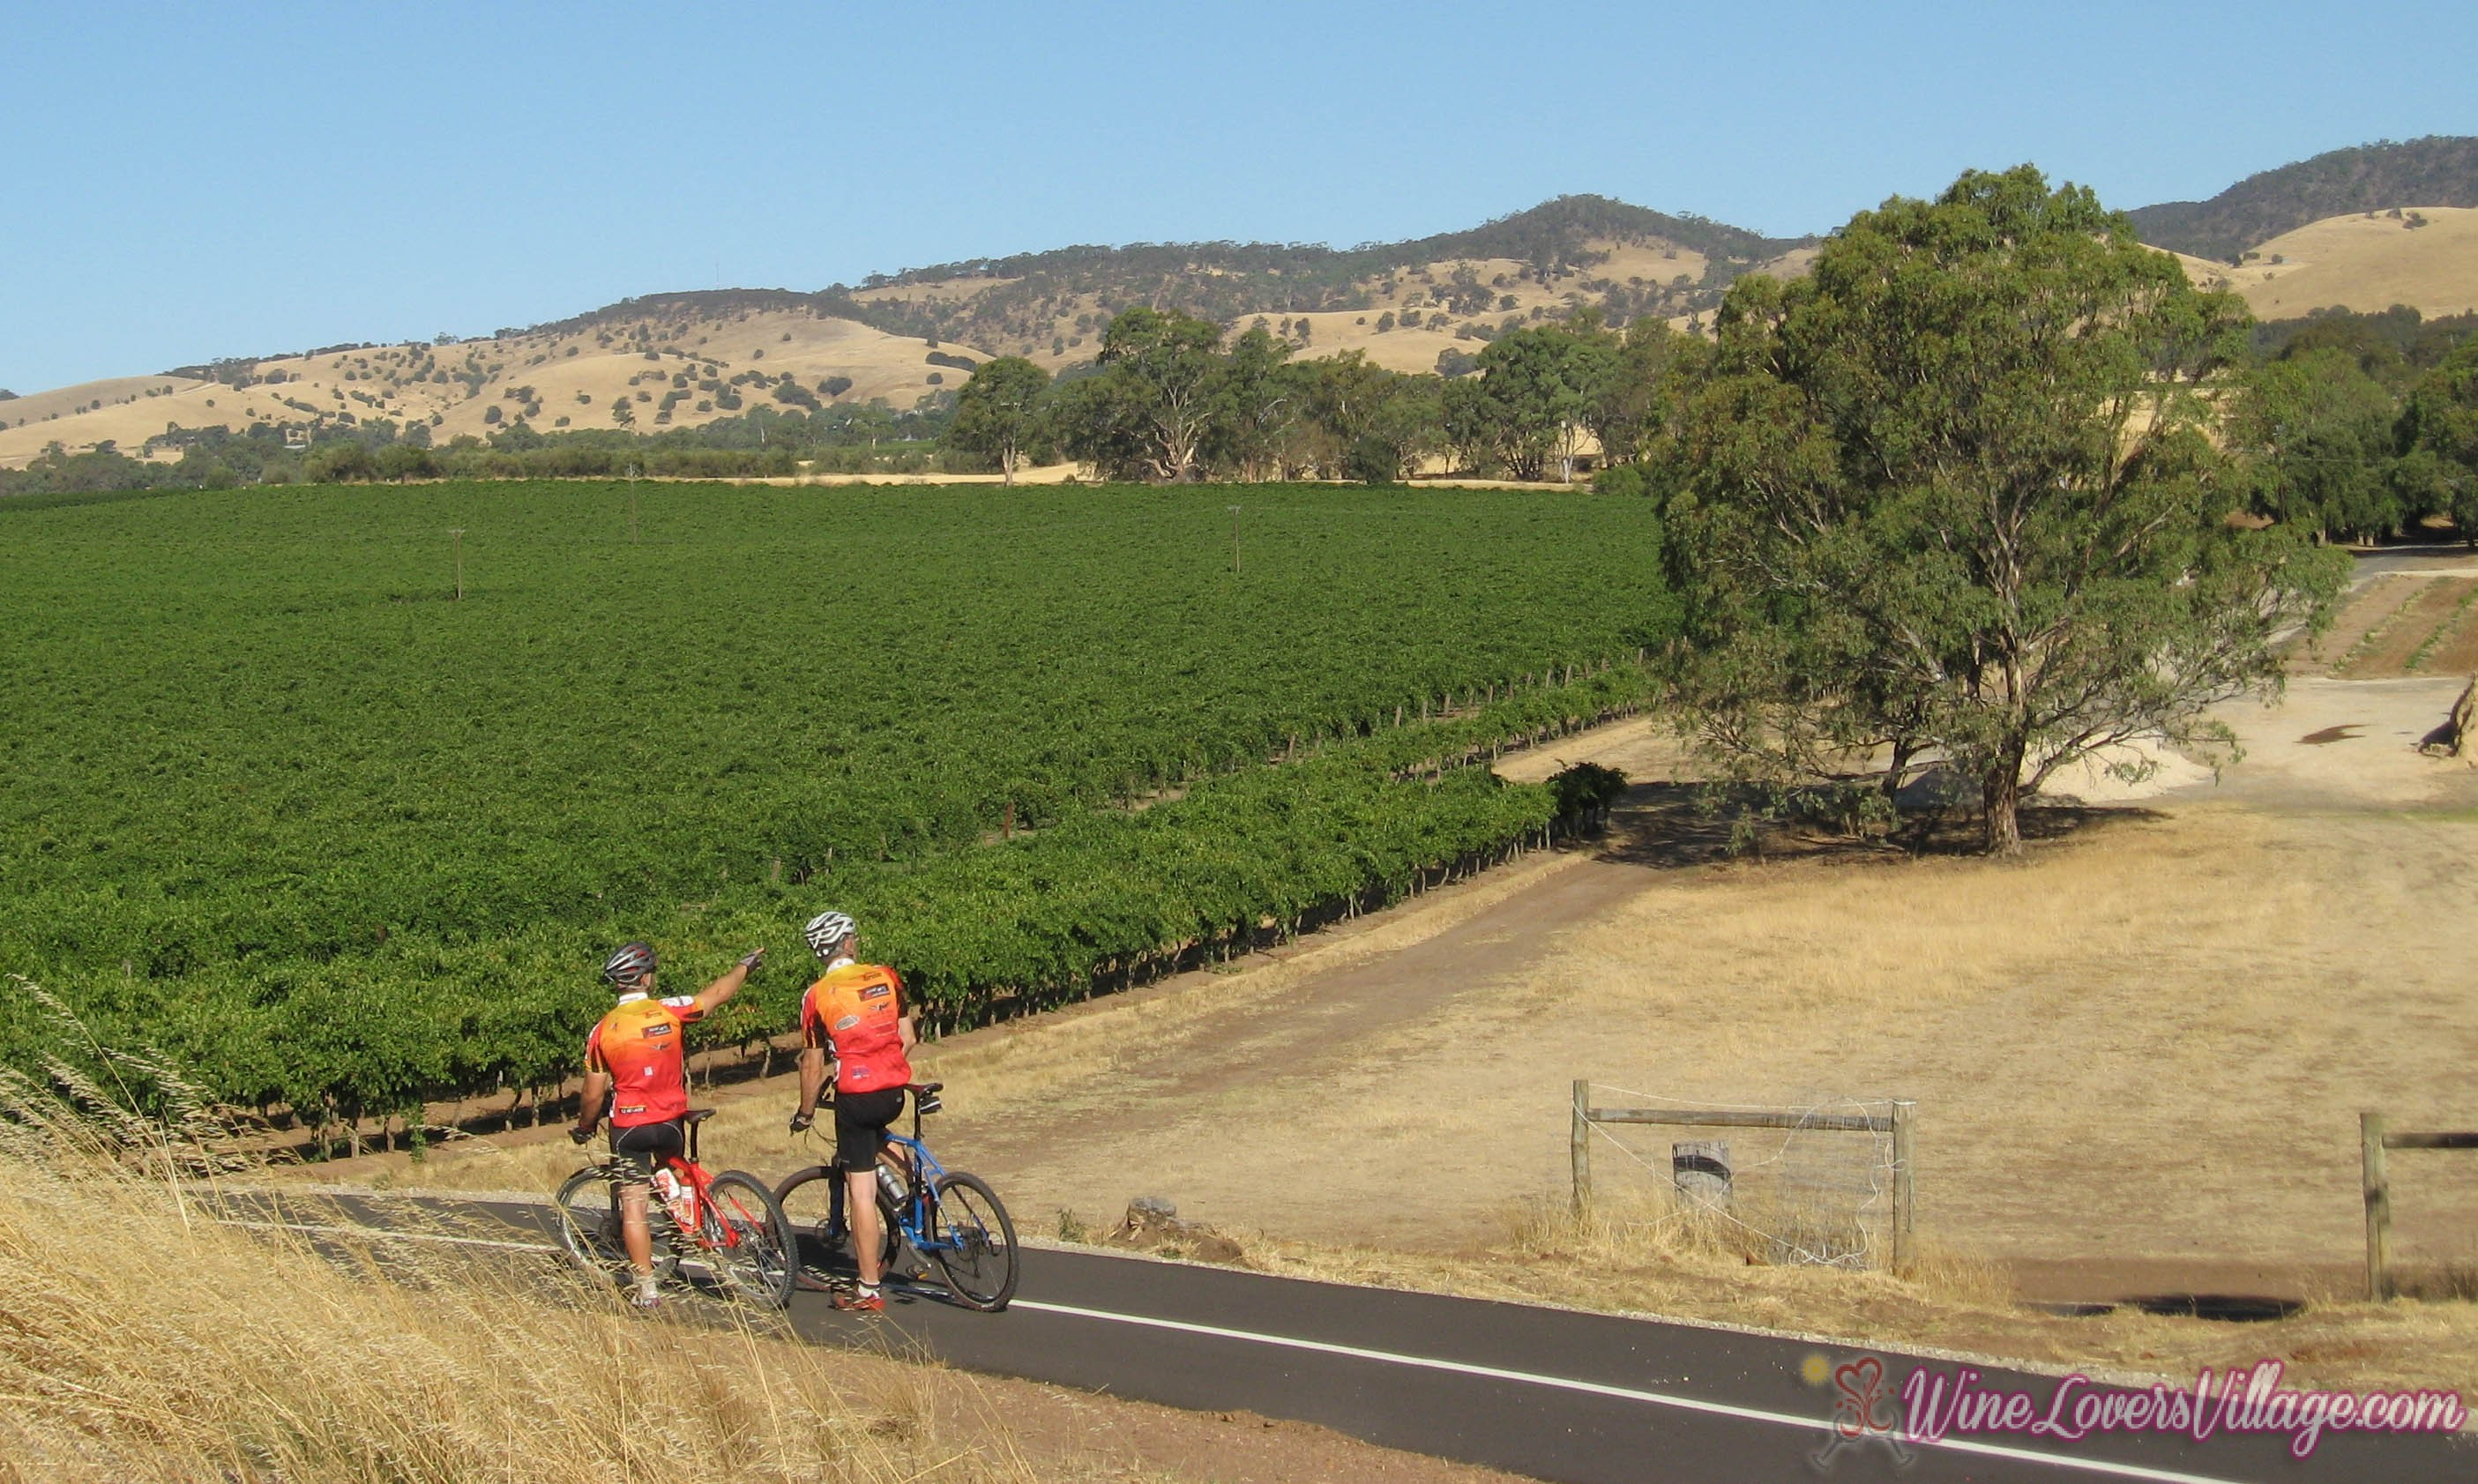 Cycling trails meet grape expectations in Australia's top wine region.